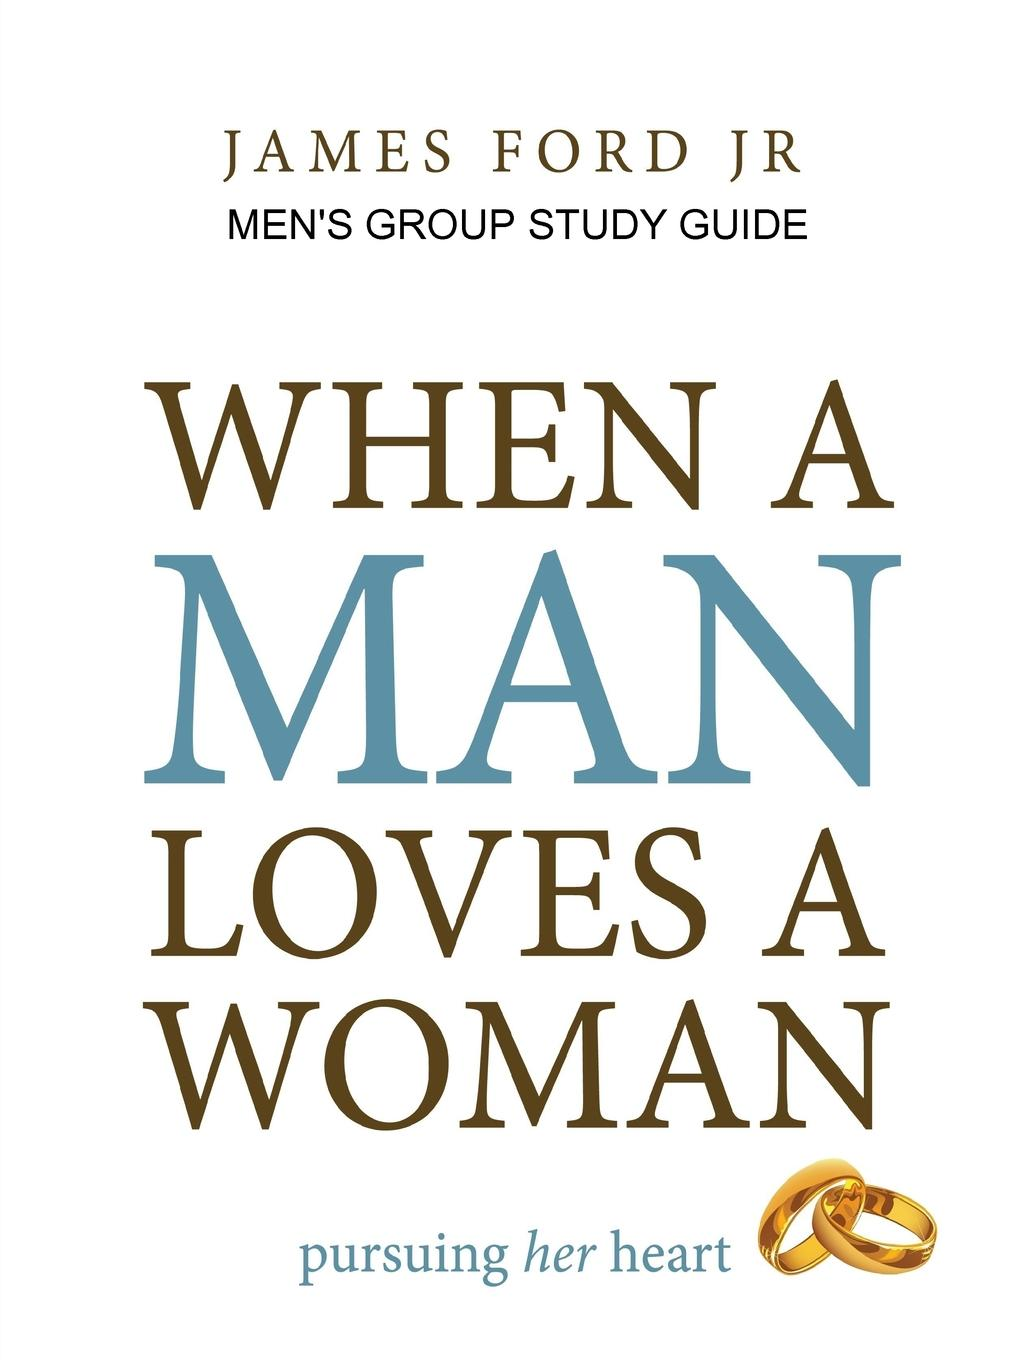 james ford jr when a man loves a woman - men.s group study guide this book loves you